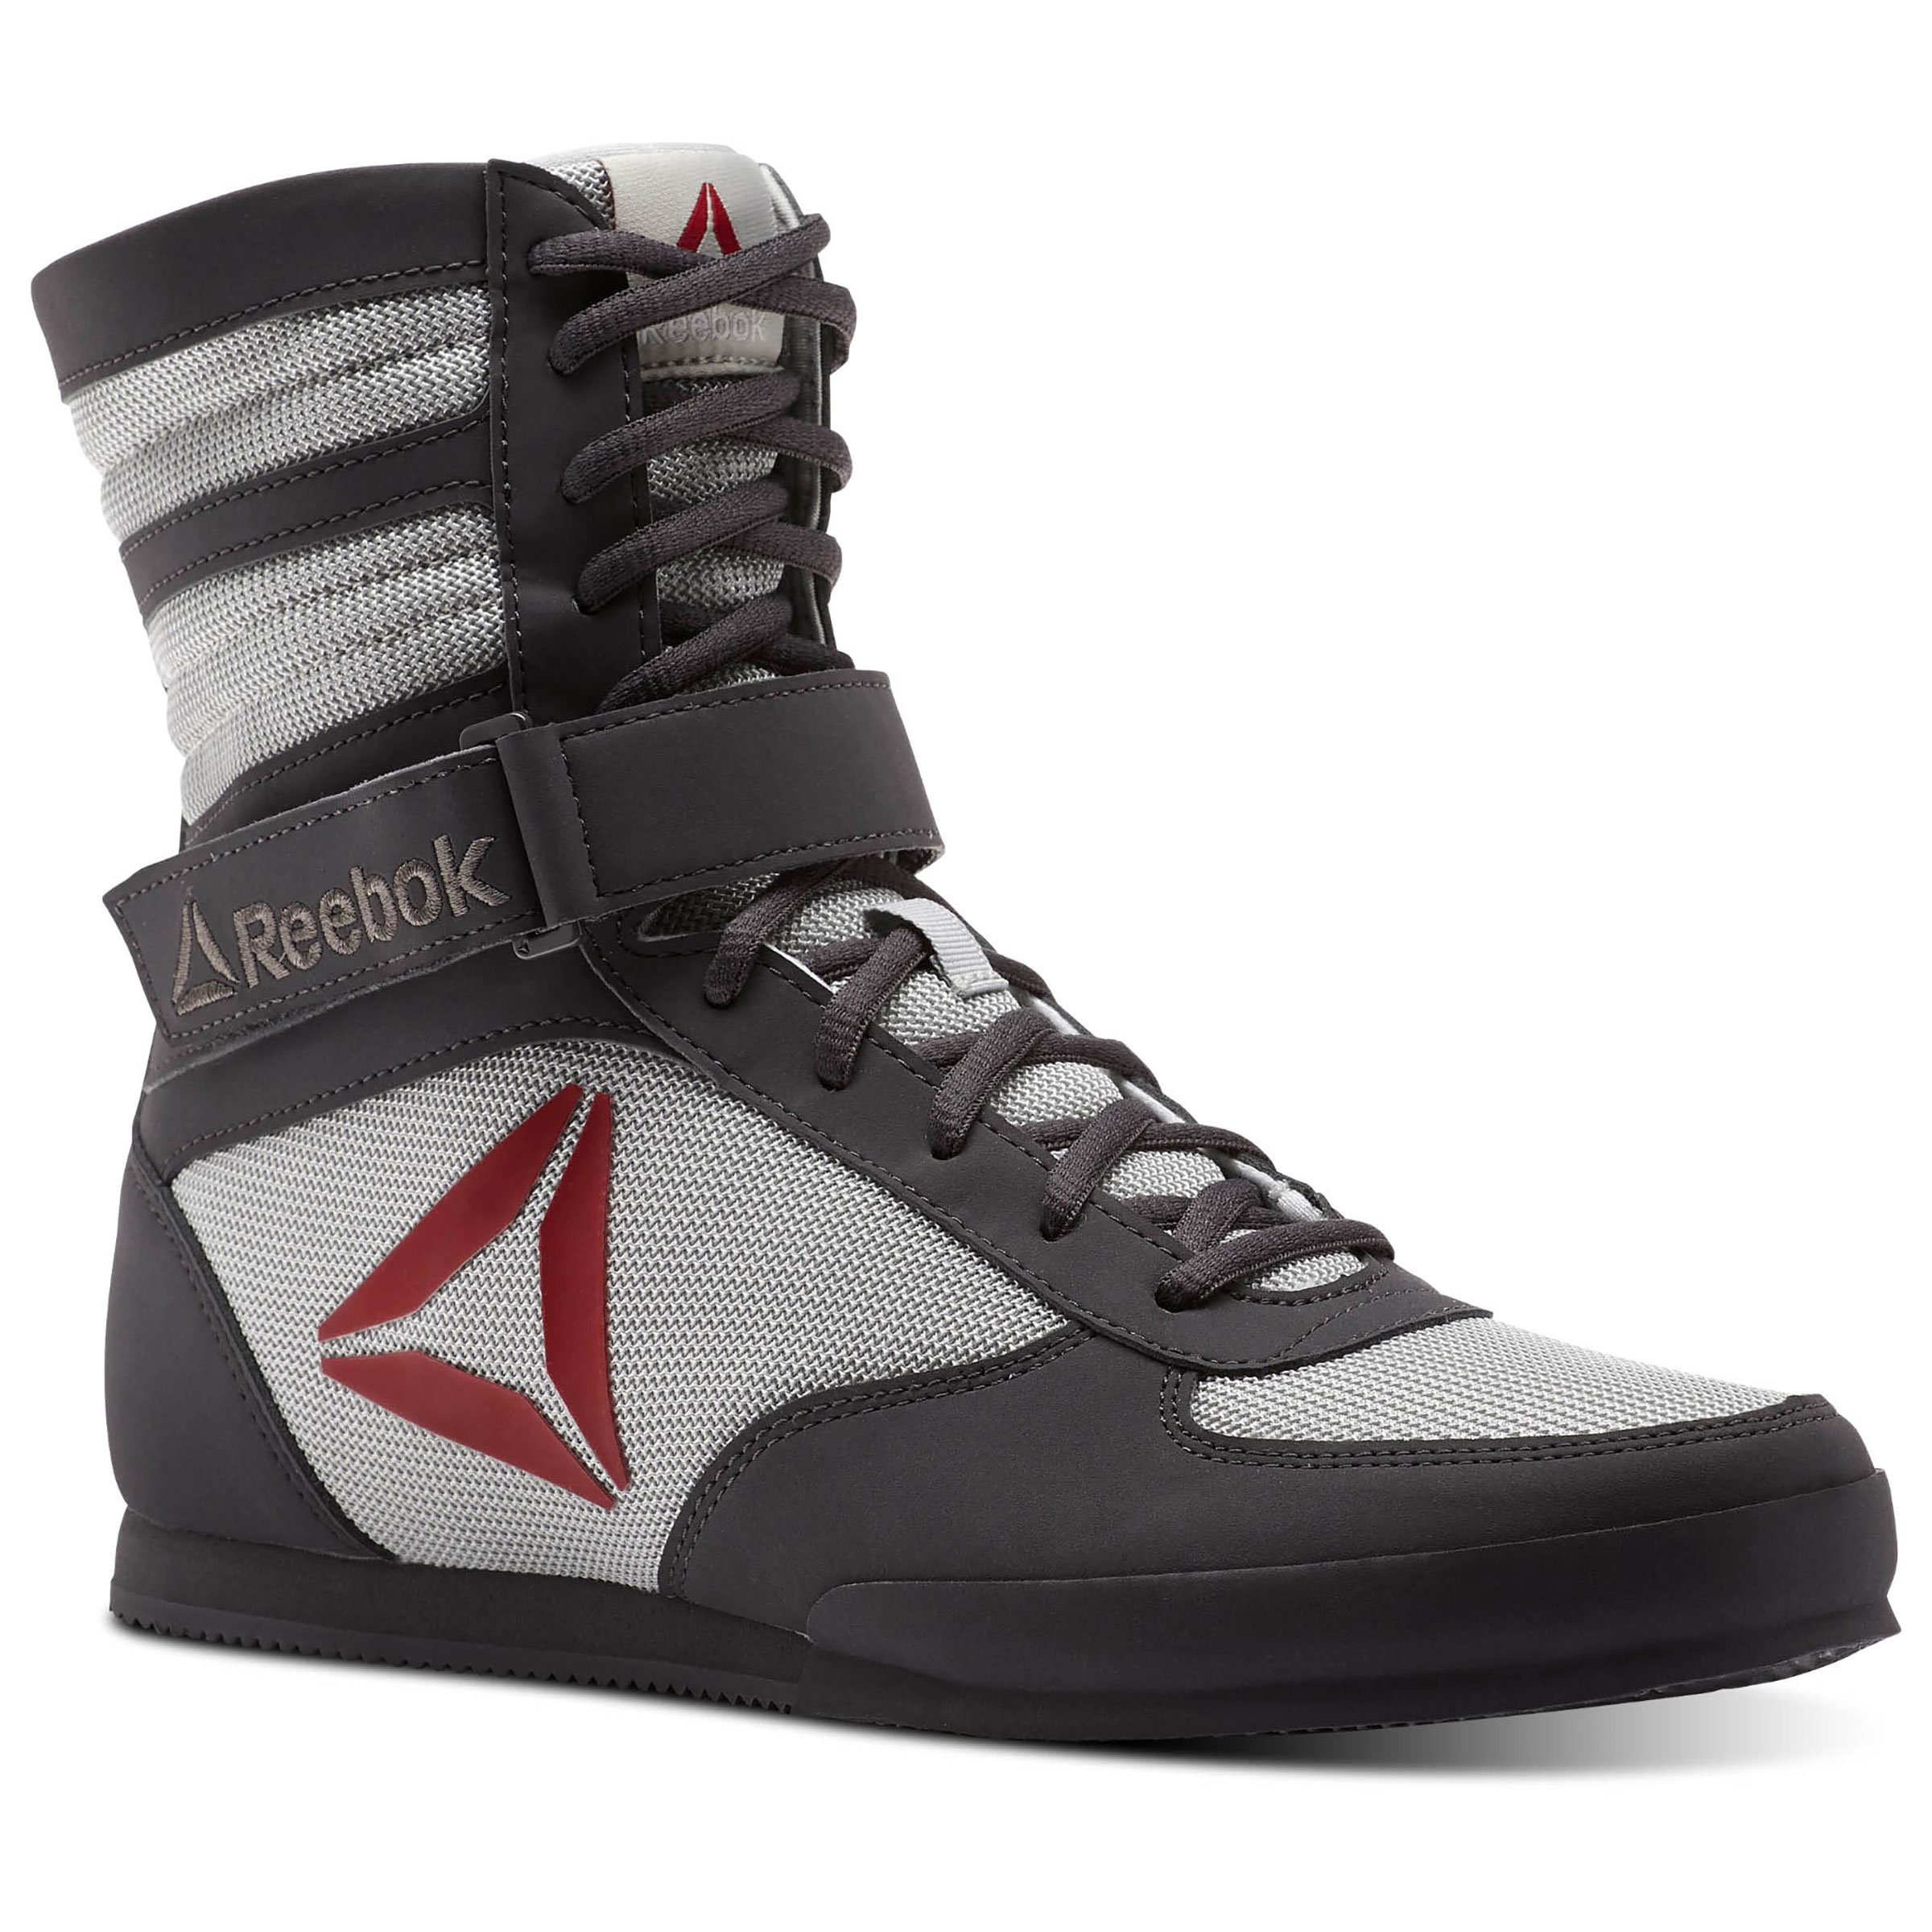 Reebok Men's Boxing Boot-Buck Cross Trainer, Buck-Ash Grey/Skull Grey/Excellent Rd/White/GRE, 7 M US